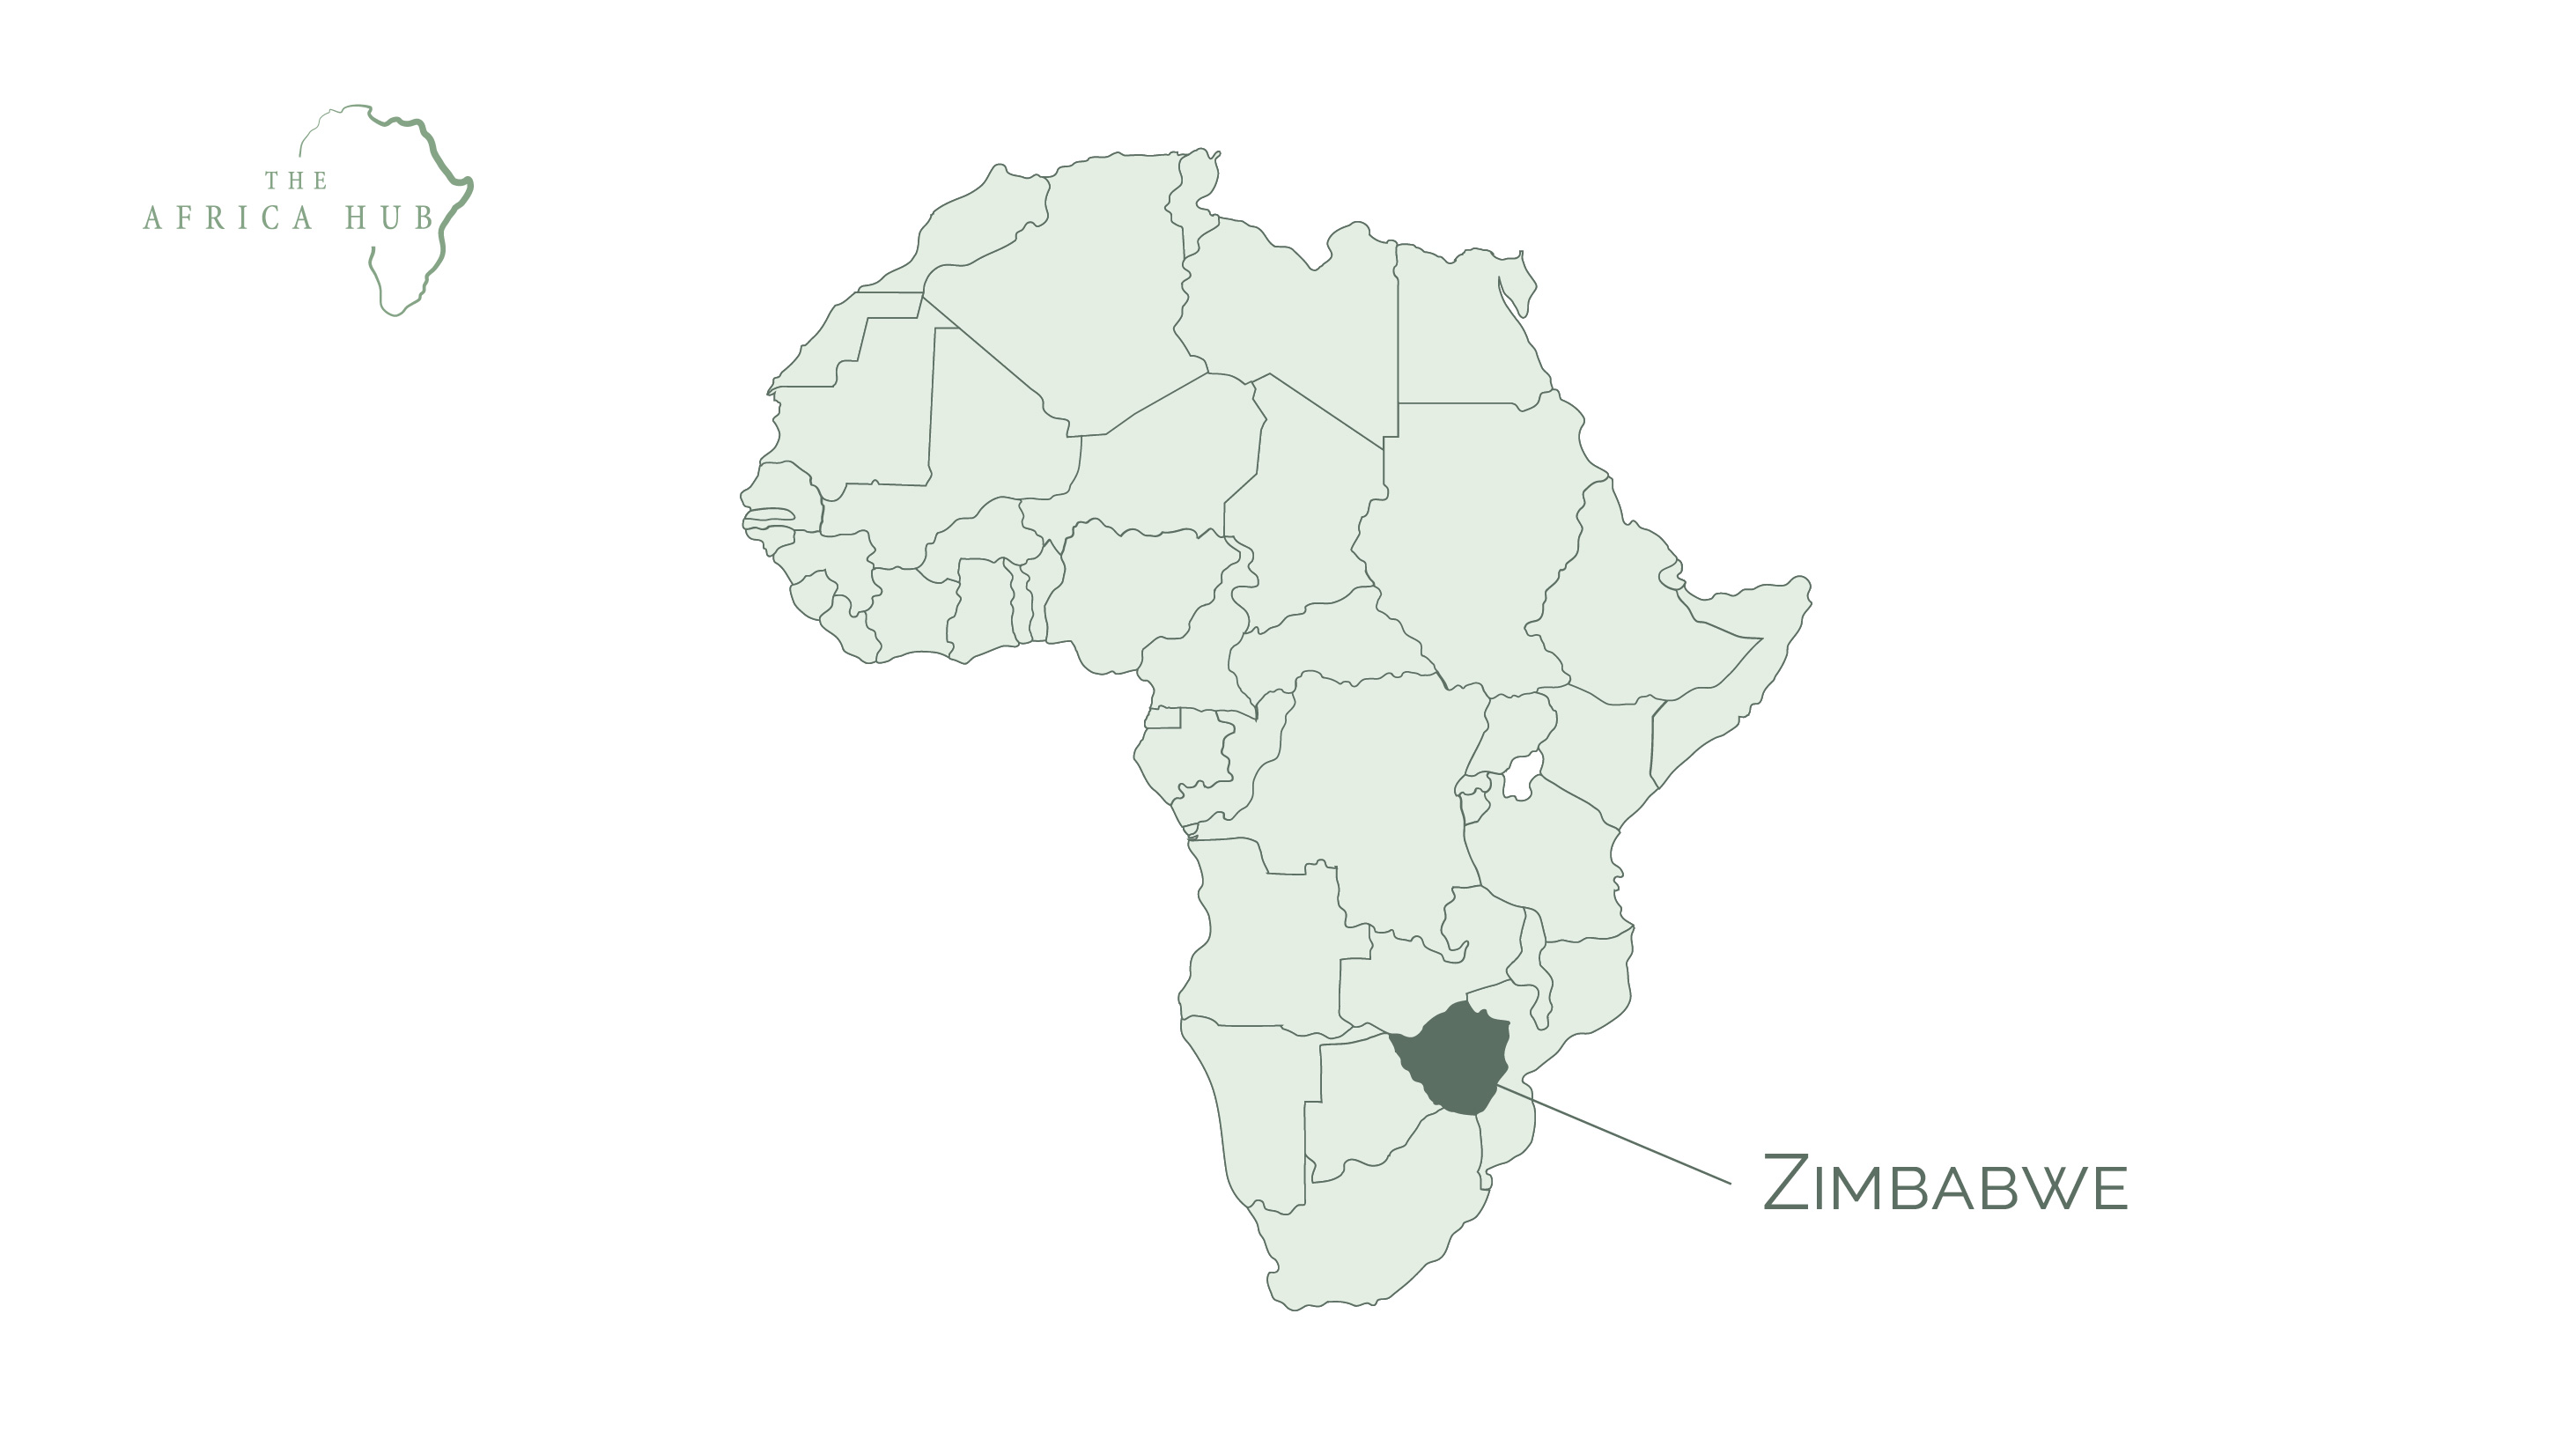 Map of Africa with Zimbabwe highlighted